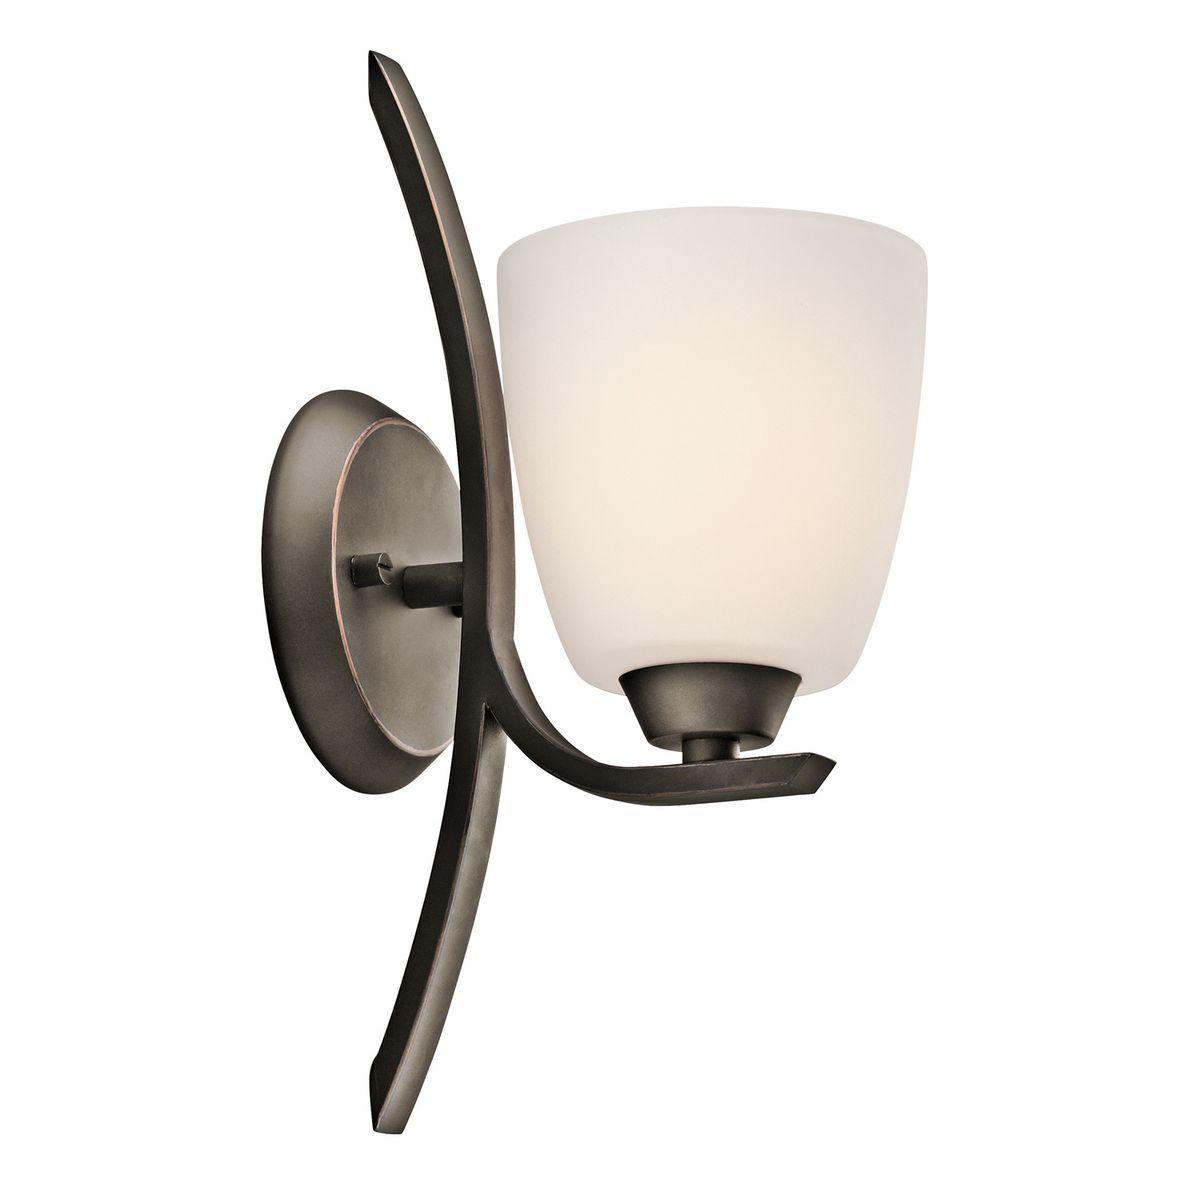 Kichler Granby 1-Light Wall Sconce in Olde Bronze - Wall ... on Kichler Olde Bronze Wall Sconce id=59814